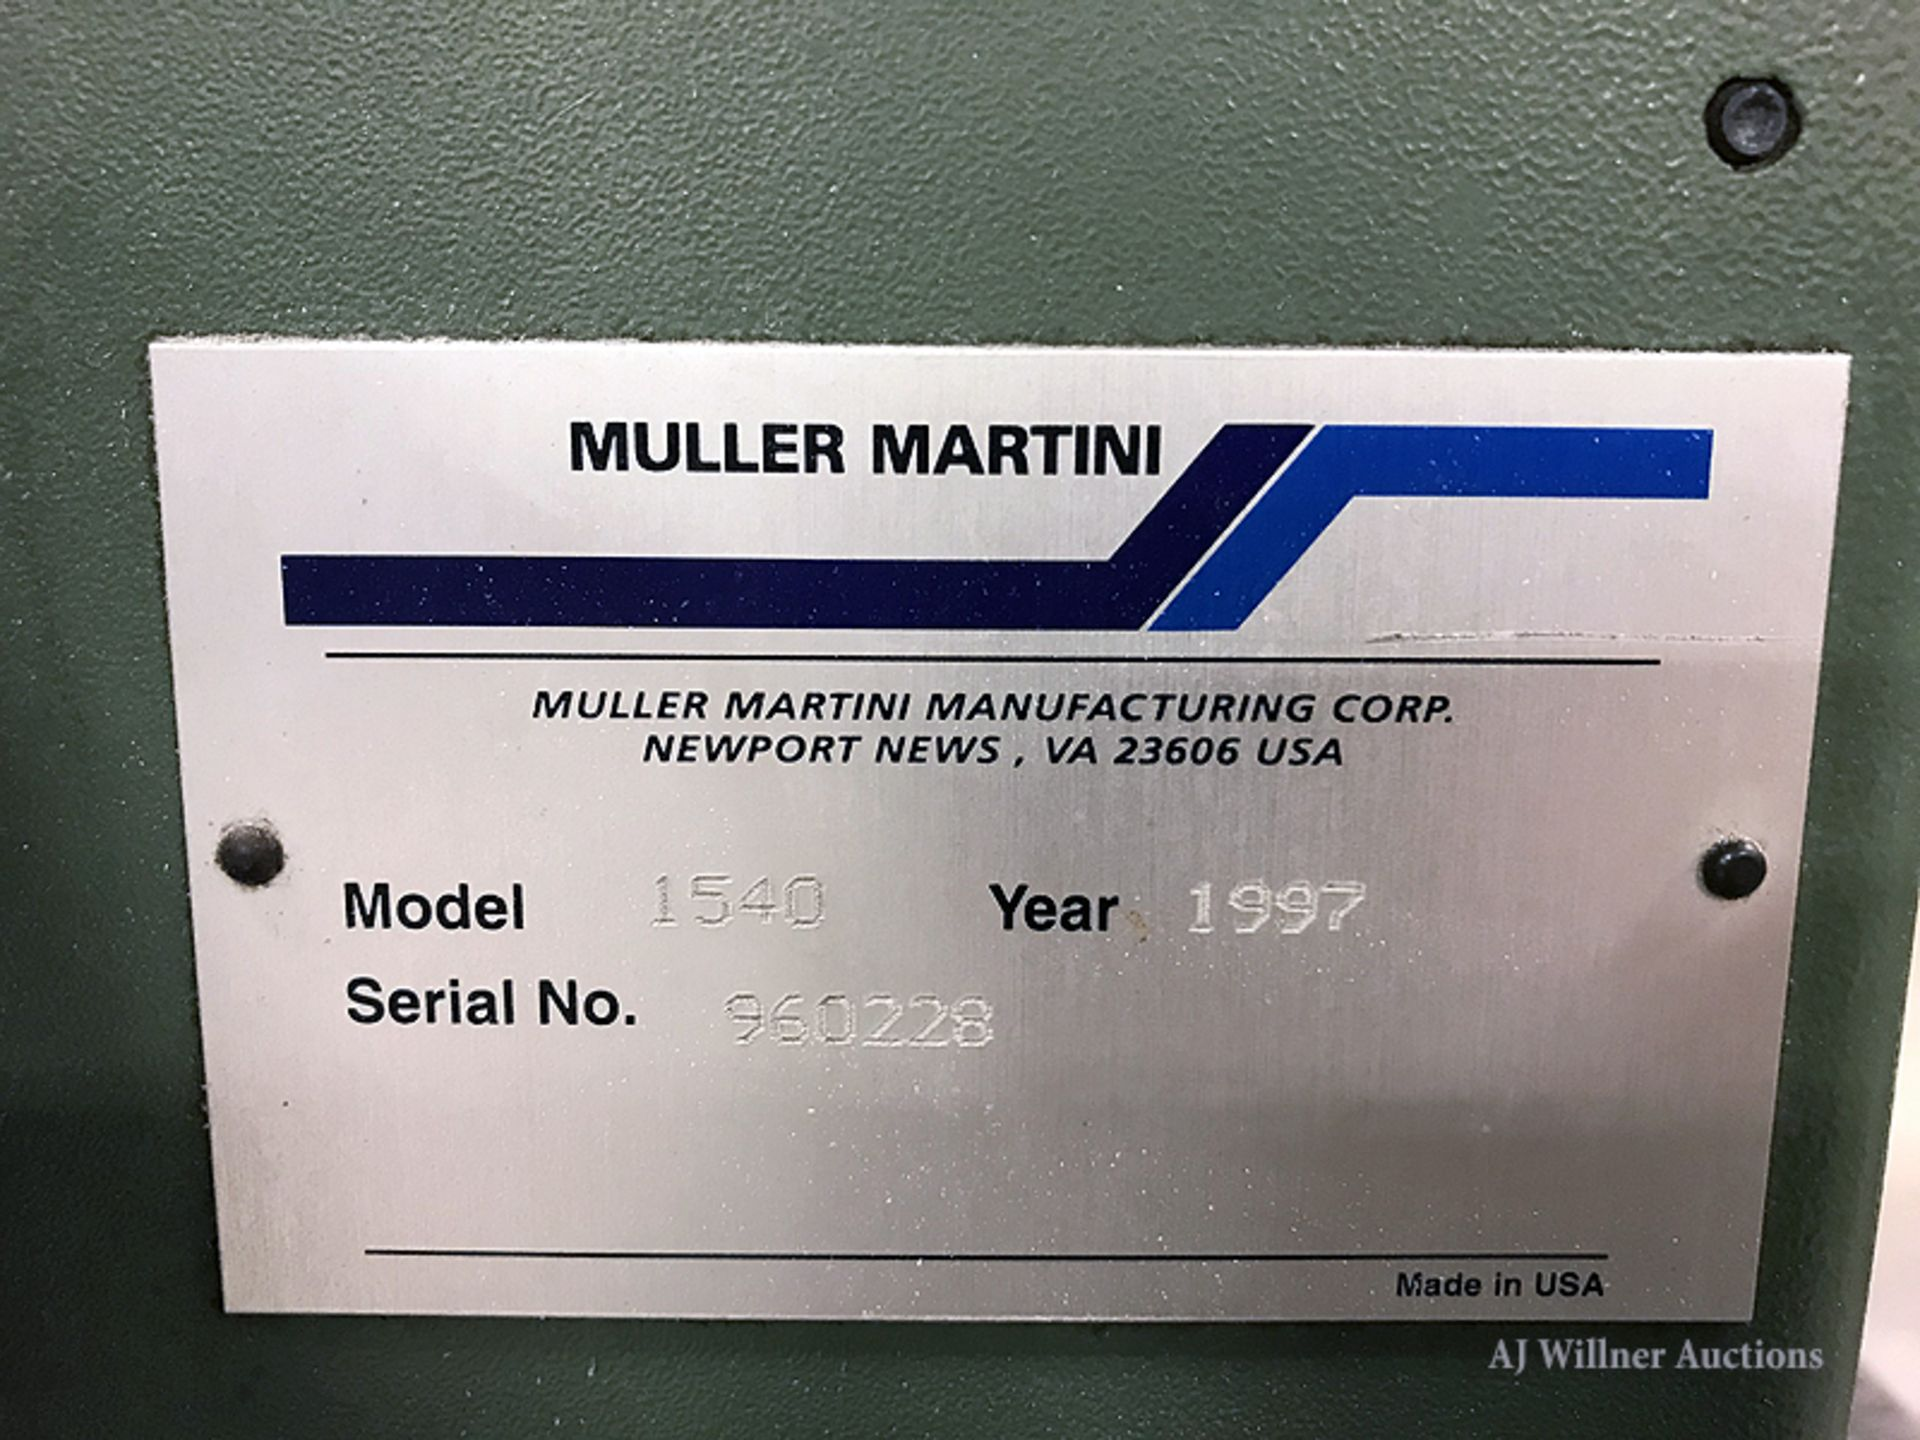 Lot 11 - Muller Martini Apollo Model 1540 Counter Stacker